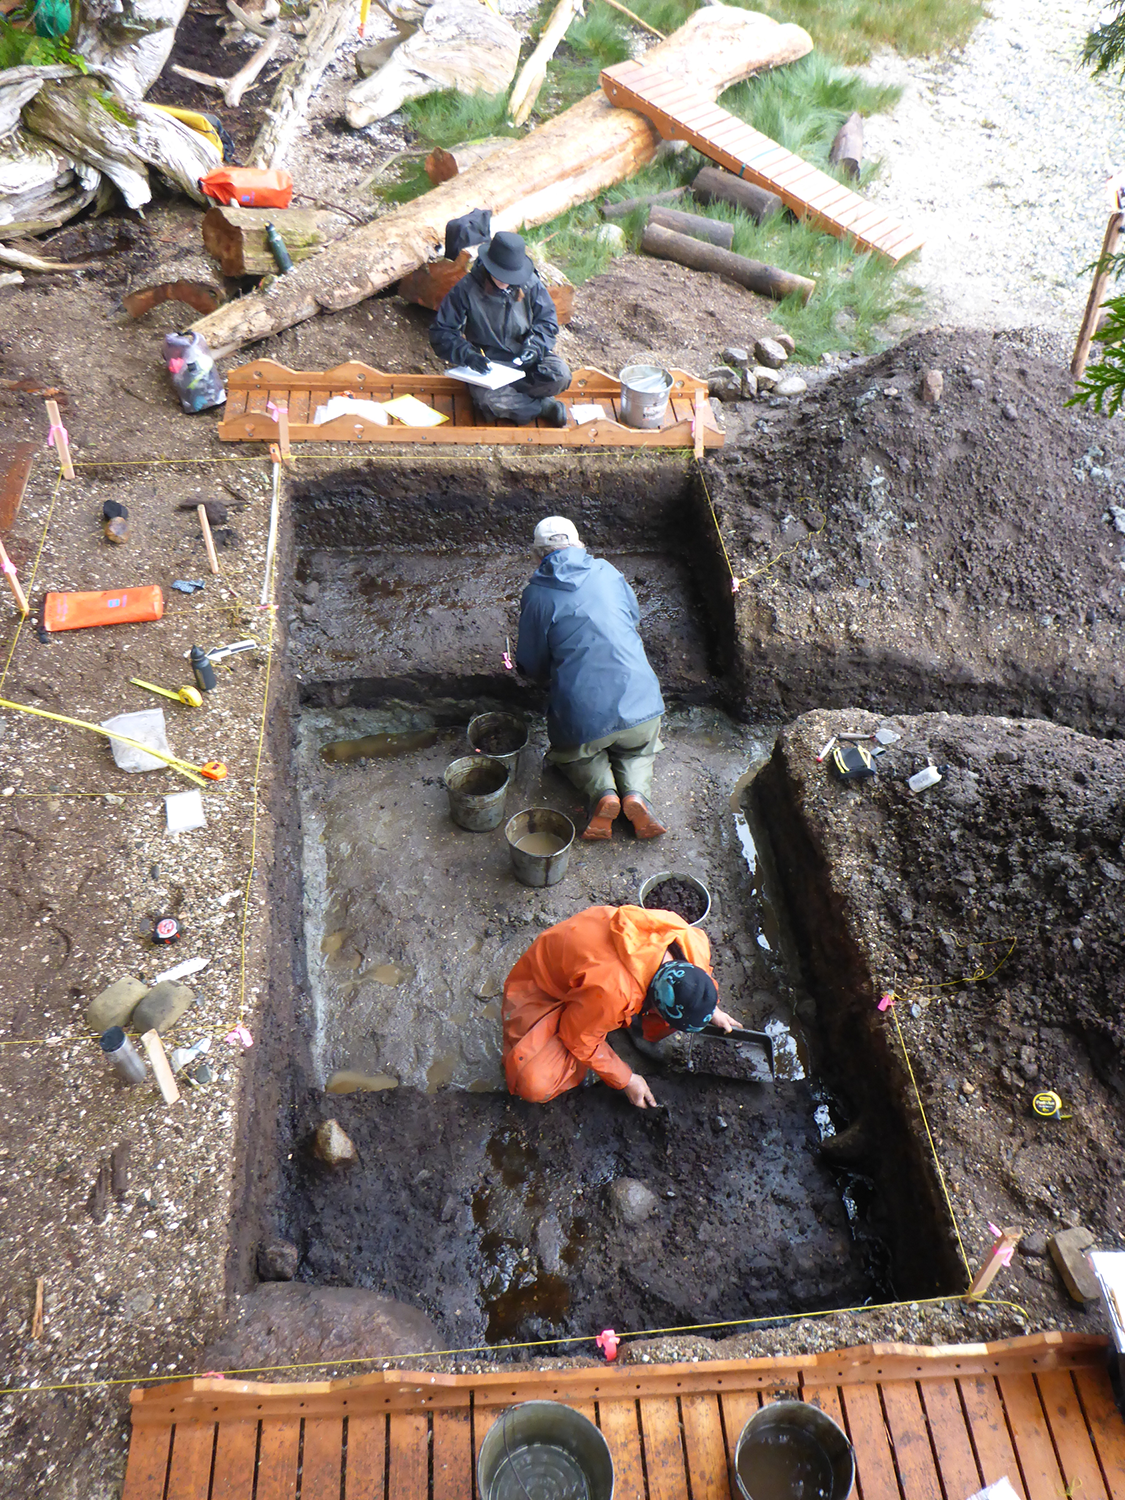 The excavation site that revealed the prints. (Credit: Joanne McSporran)